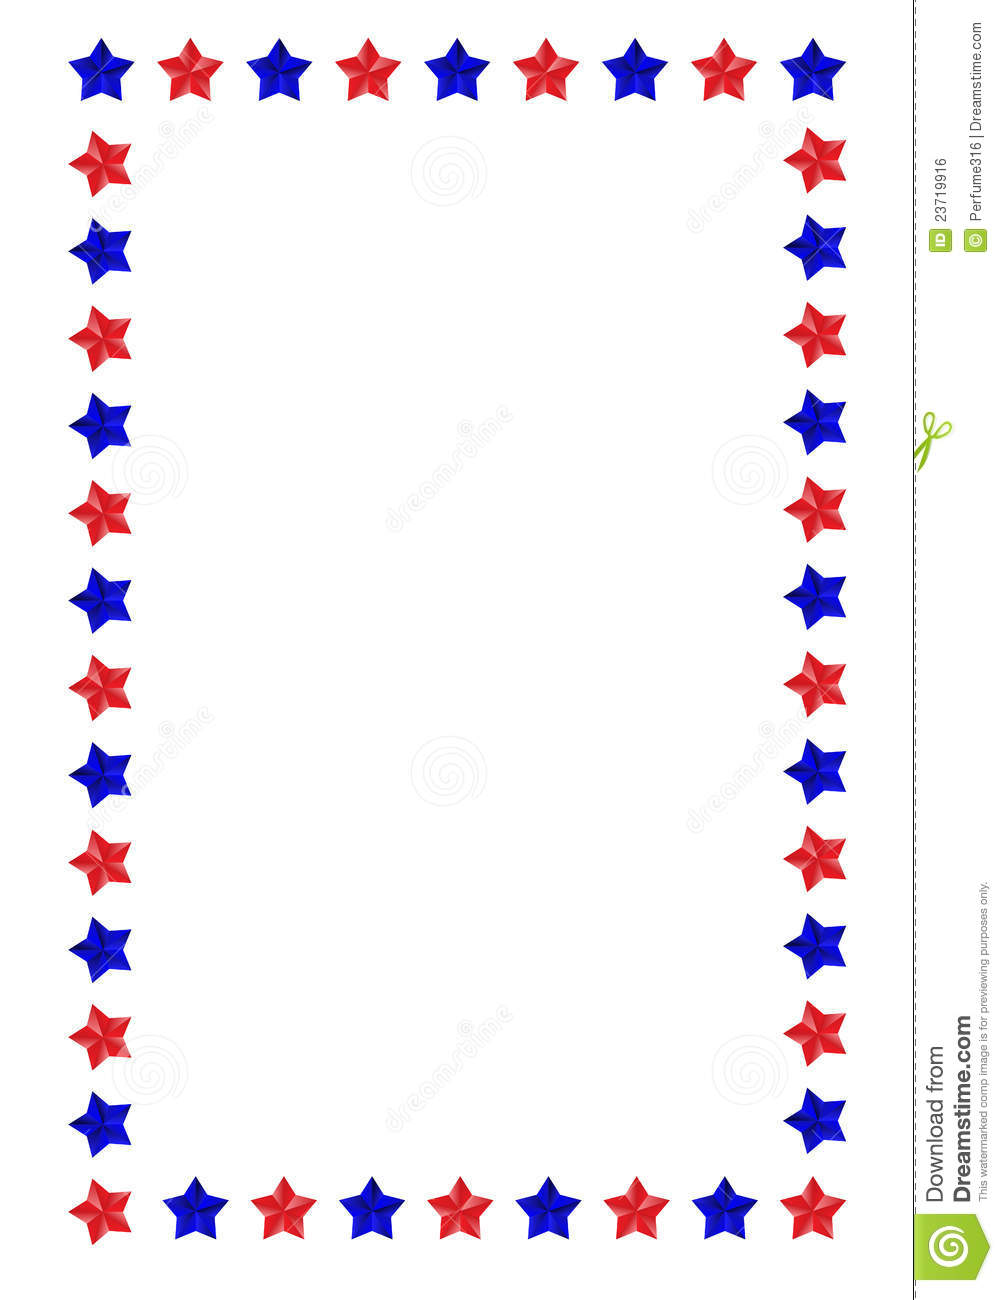 American clipart borders. Star pattern at getdrawings